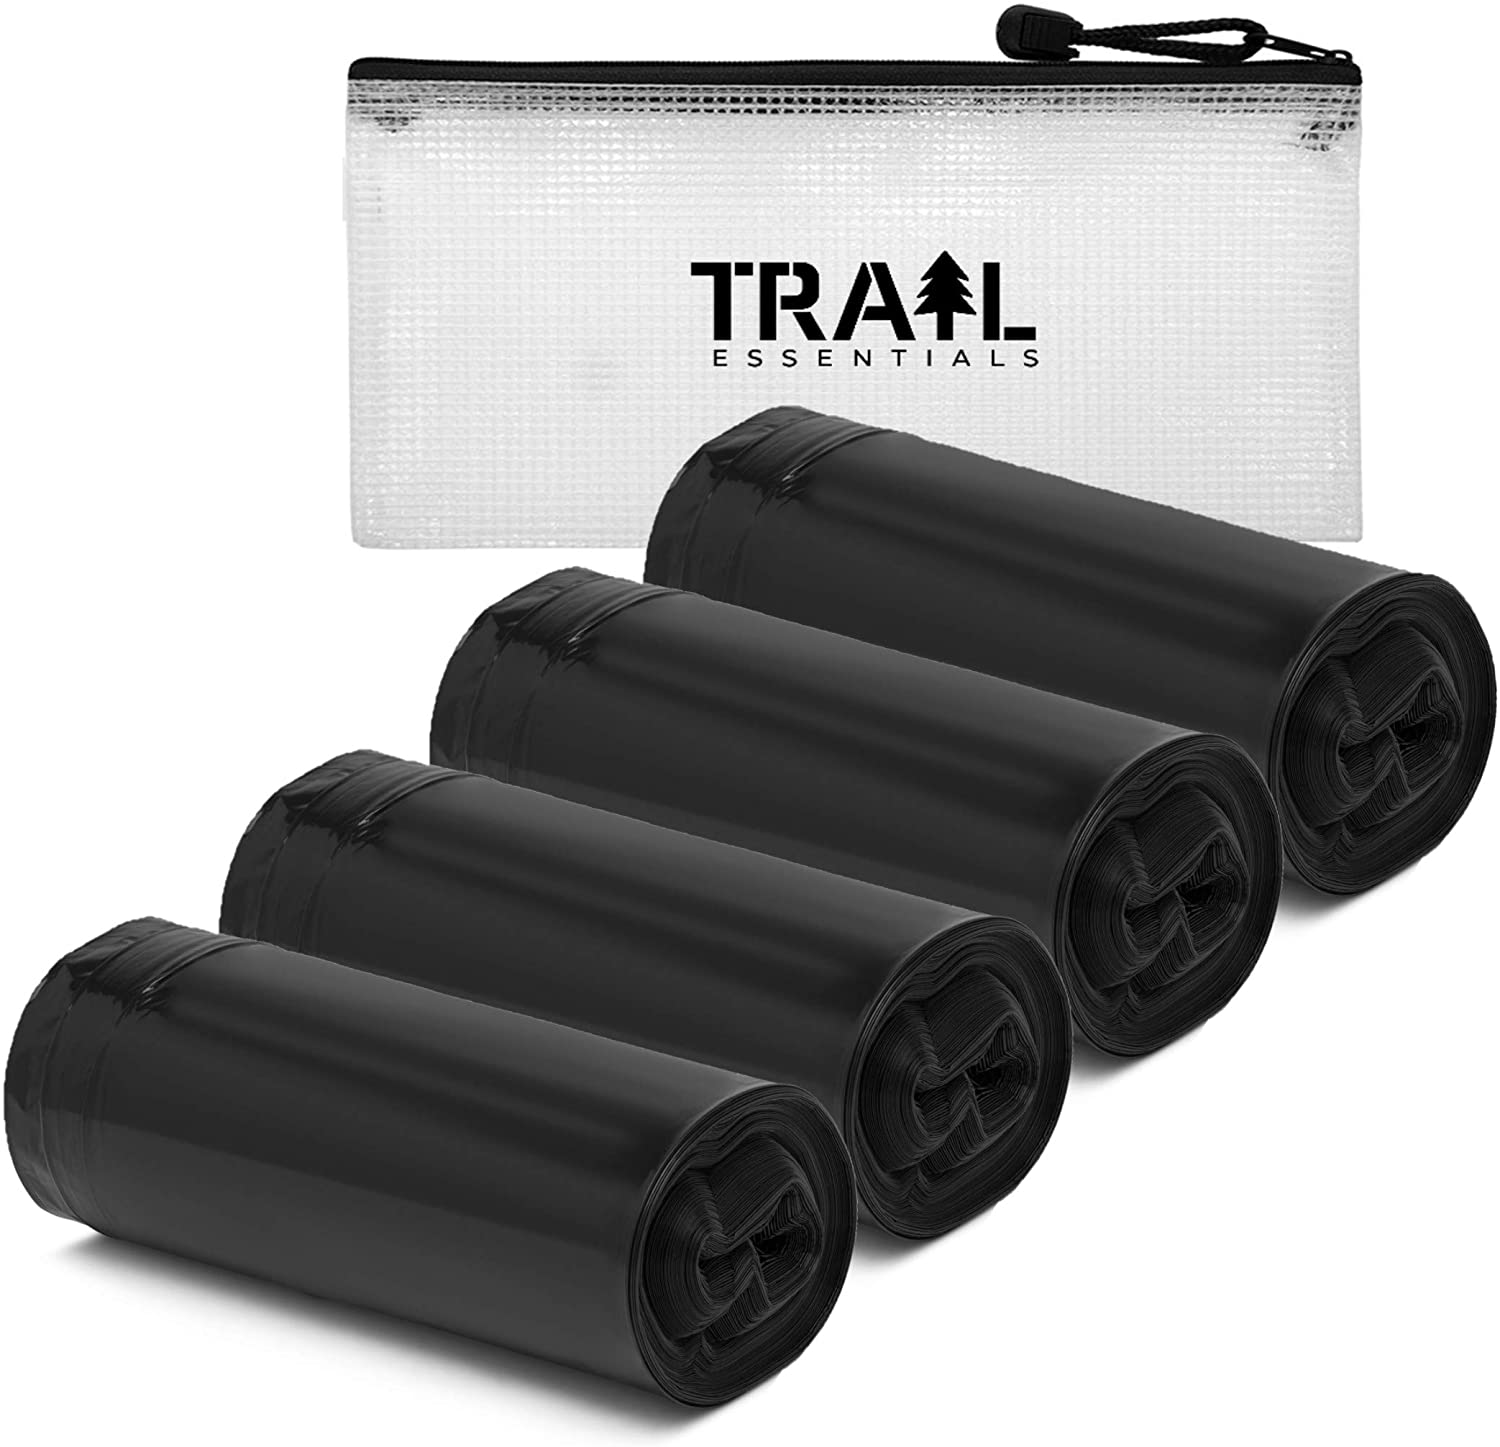 Trail Essentials Toilet Liners; Hygienic, Leak-Proof, Odor Free, Compatible with Camping Commodes and Portable Toilets, Black Opaque Color– Roll of Liners in Convenient Carry Case